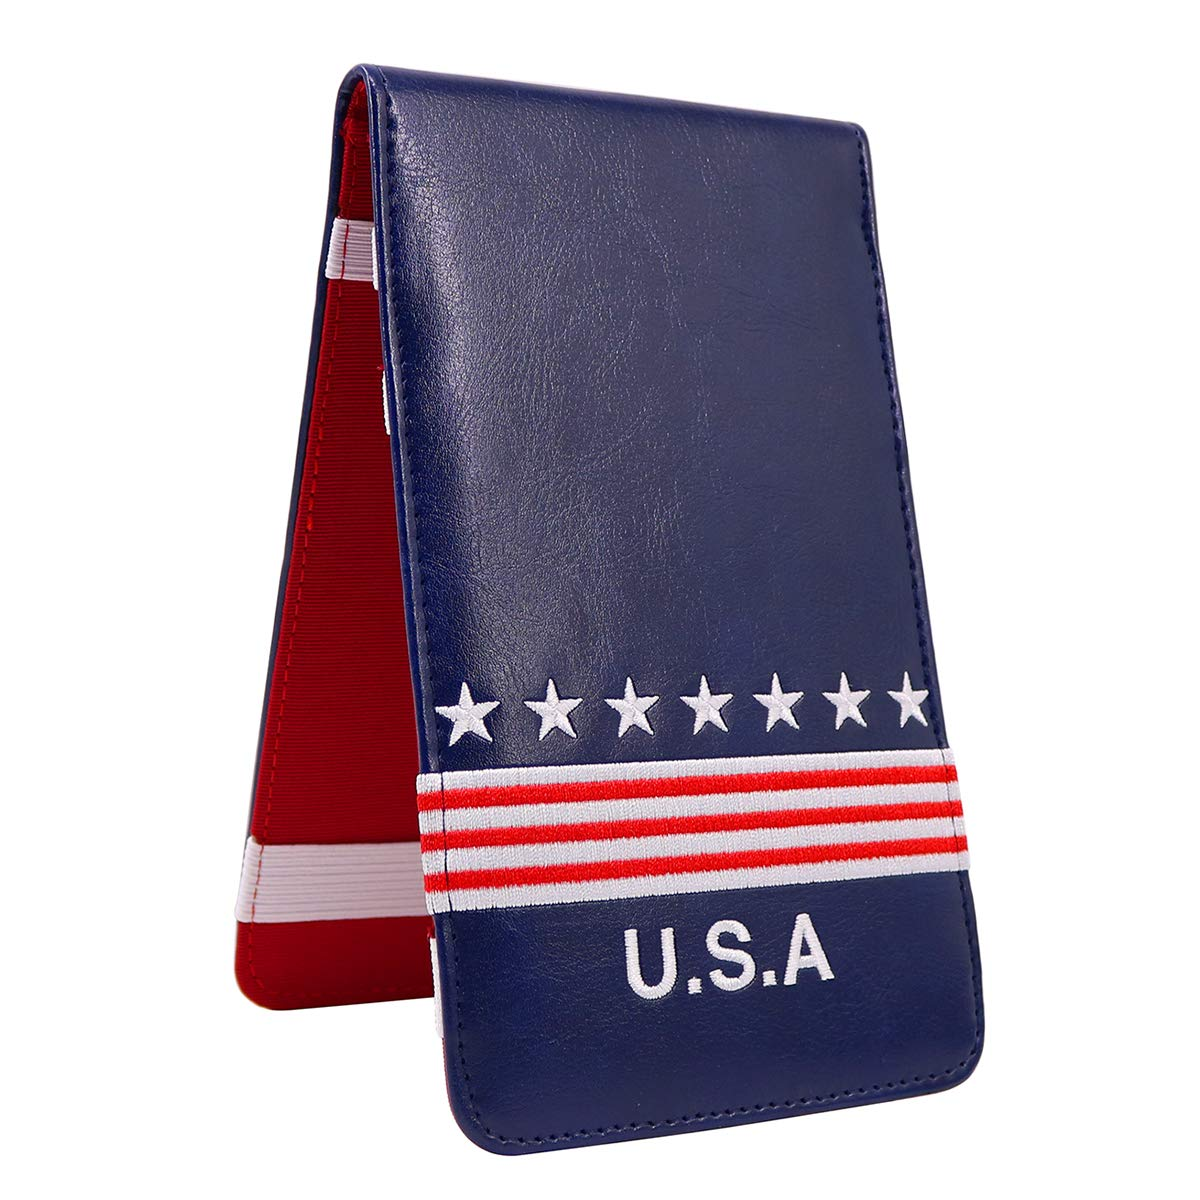 Craftsman Golf USA Star Red Stripes Blue Pu Leather Scorecard & Yardage Holder Cover